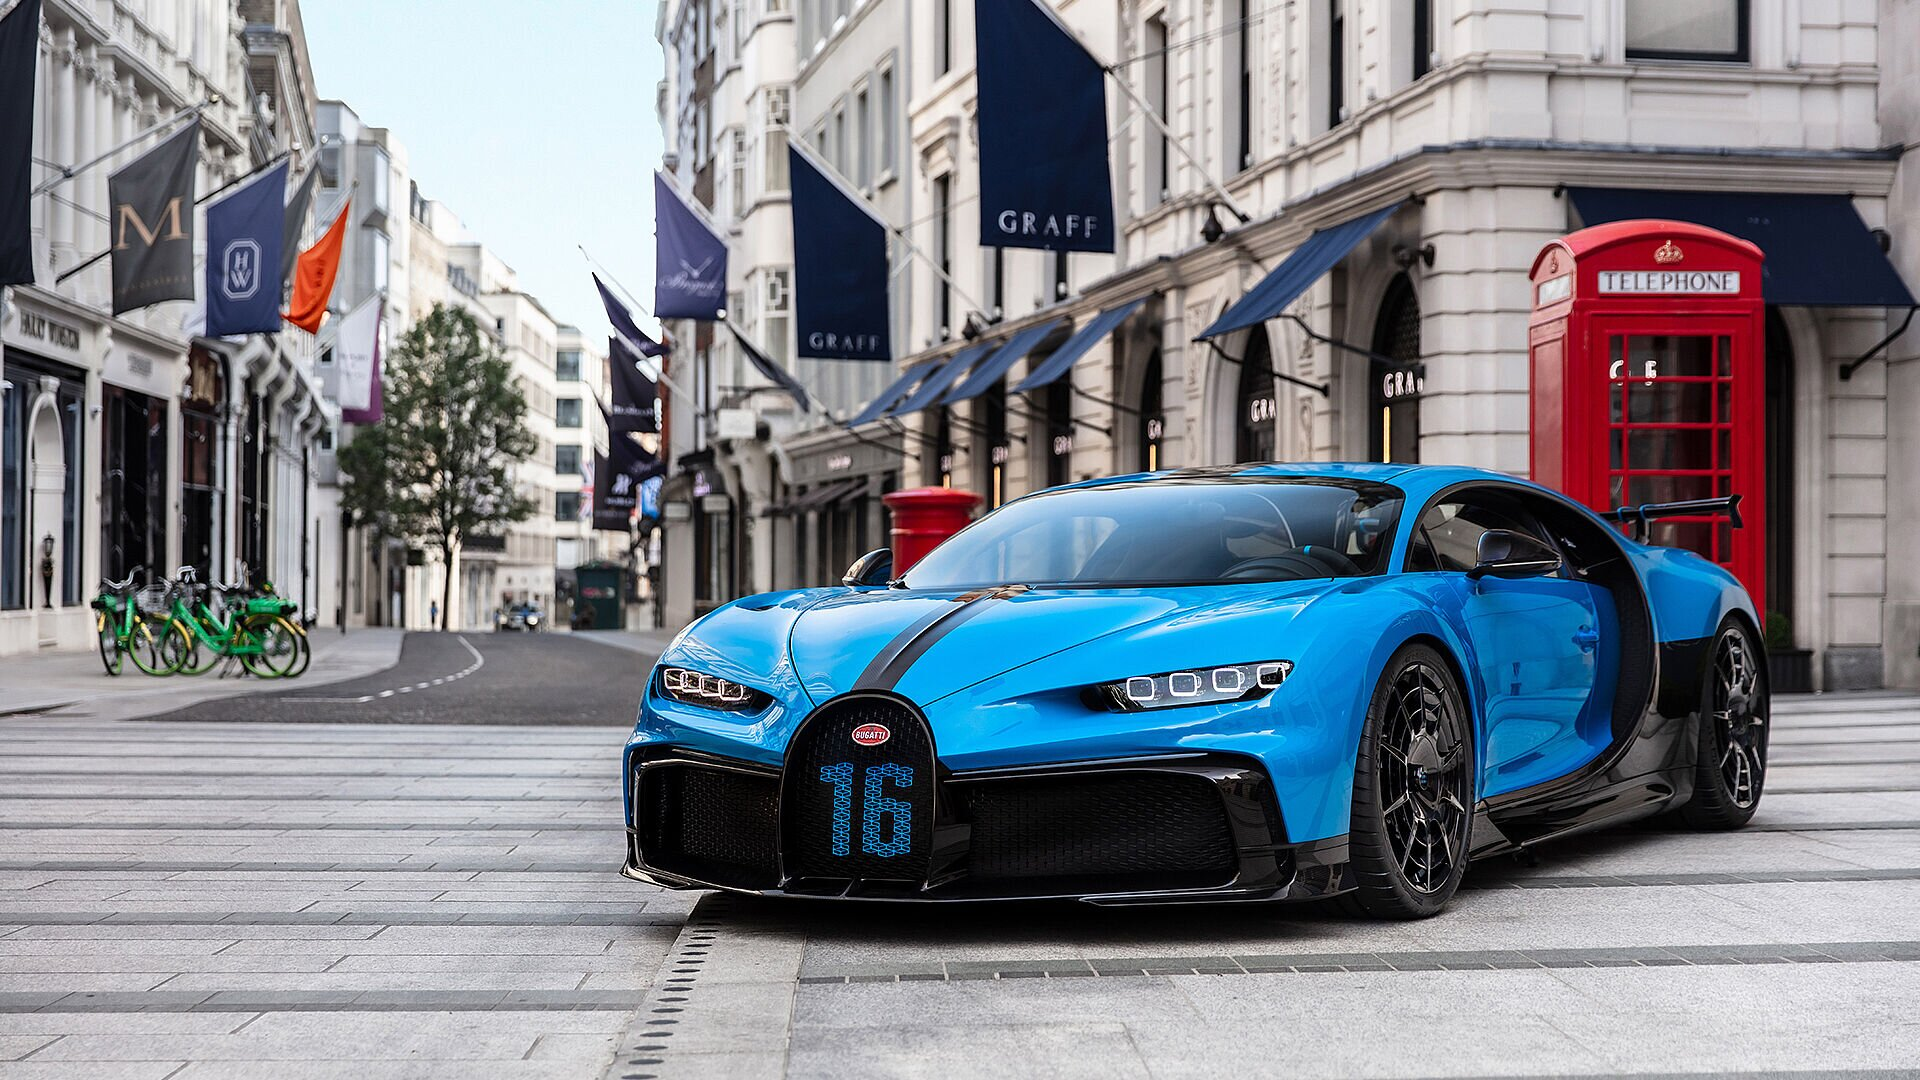 Bugatti Chiron Pur Sport continues its tour through Europe - Image 1